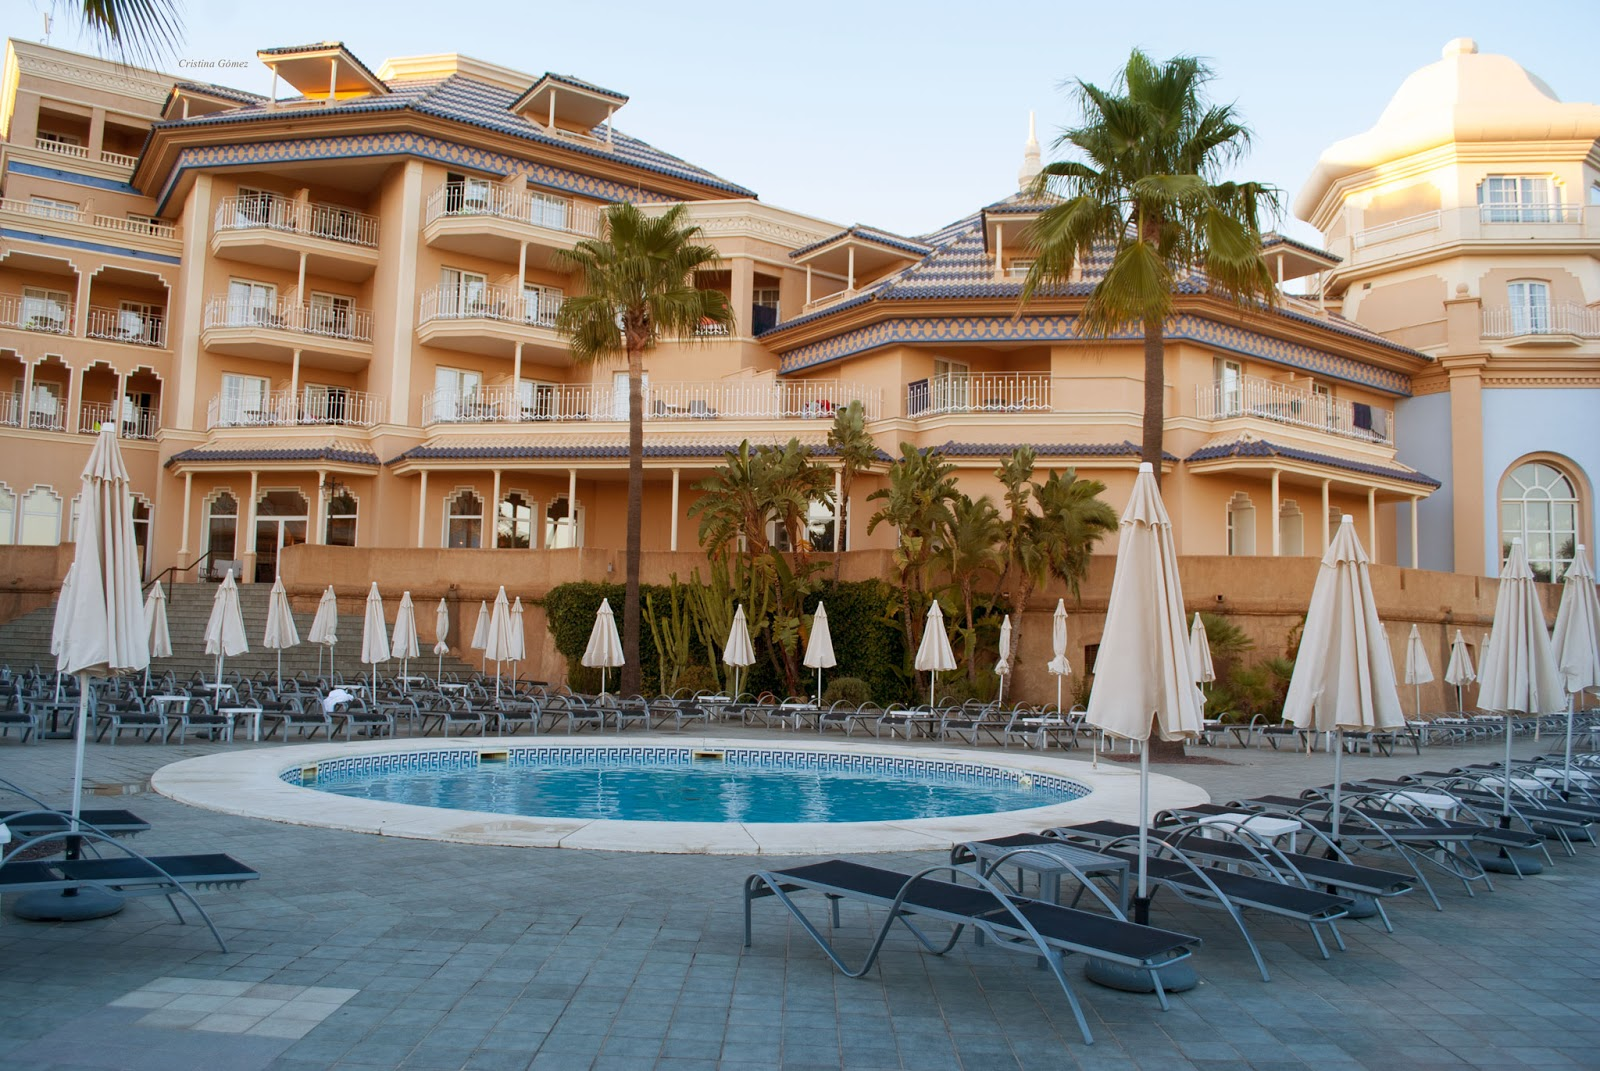 resort hotel beach spain andalusia coast southern destination melia atlantico isla canela huelva